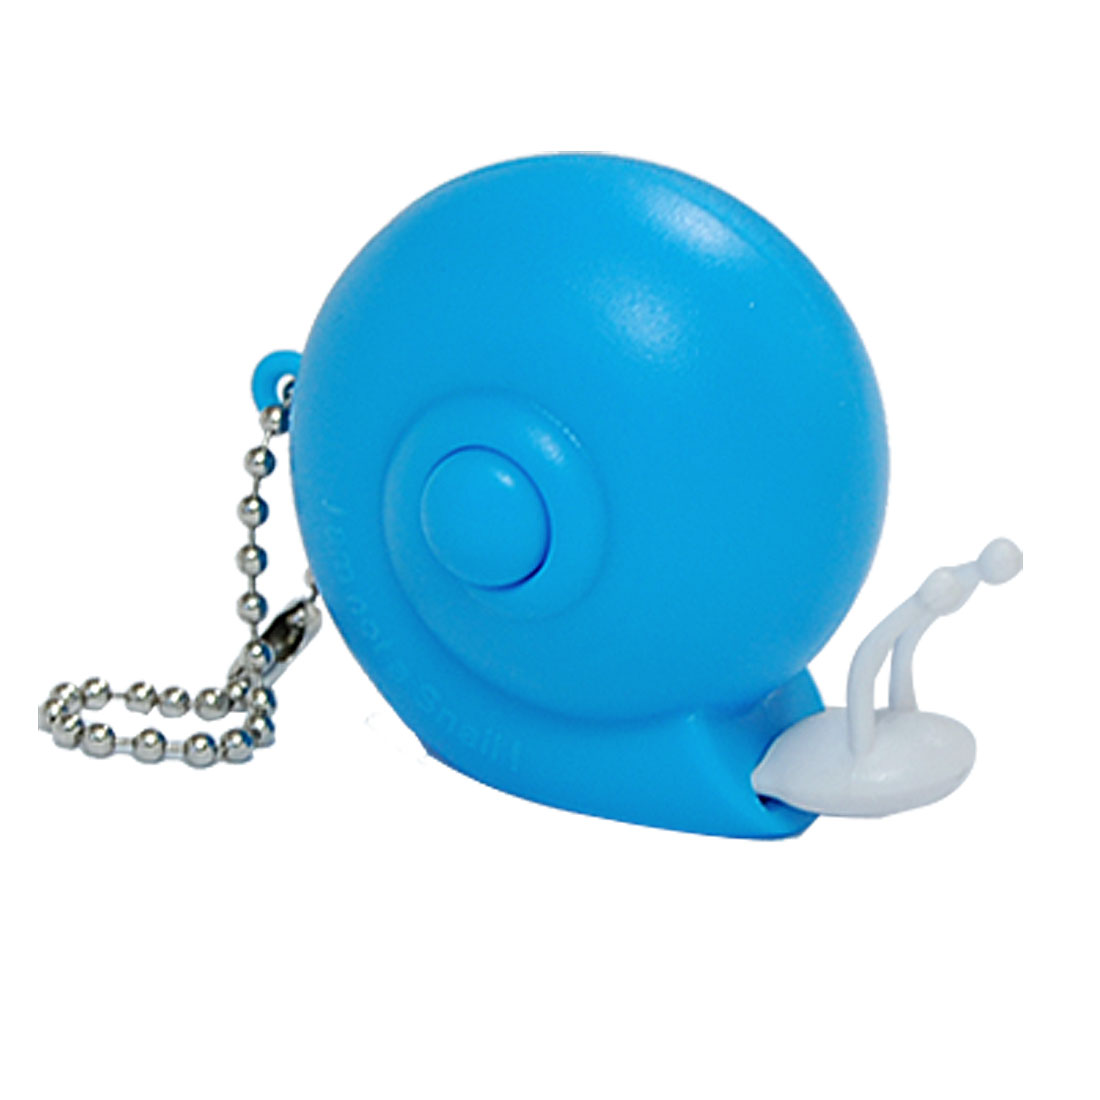 Blue Plastic Snail Tape Measure Ruler With Key Chain 1M